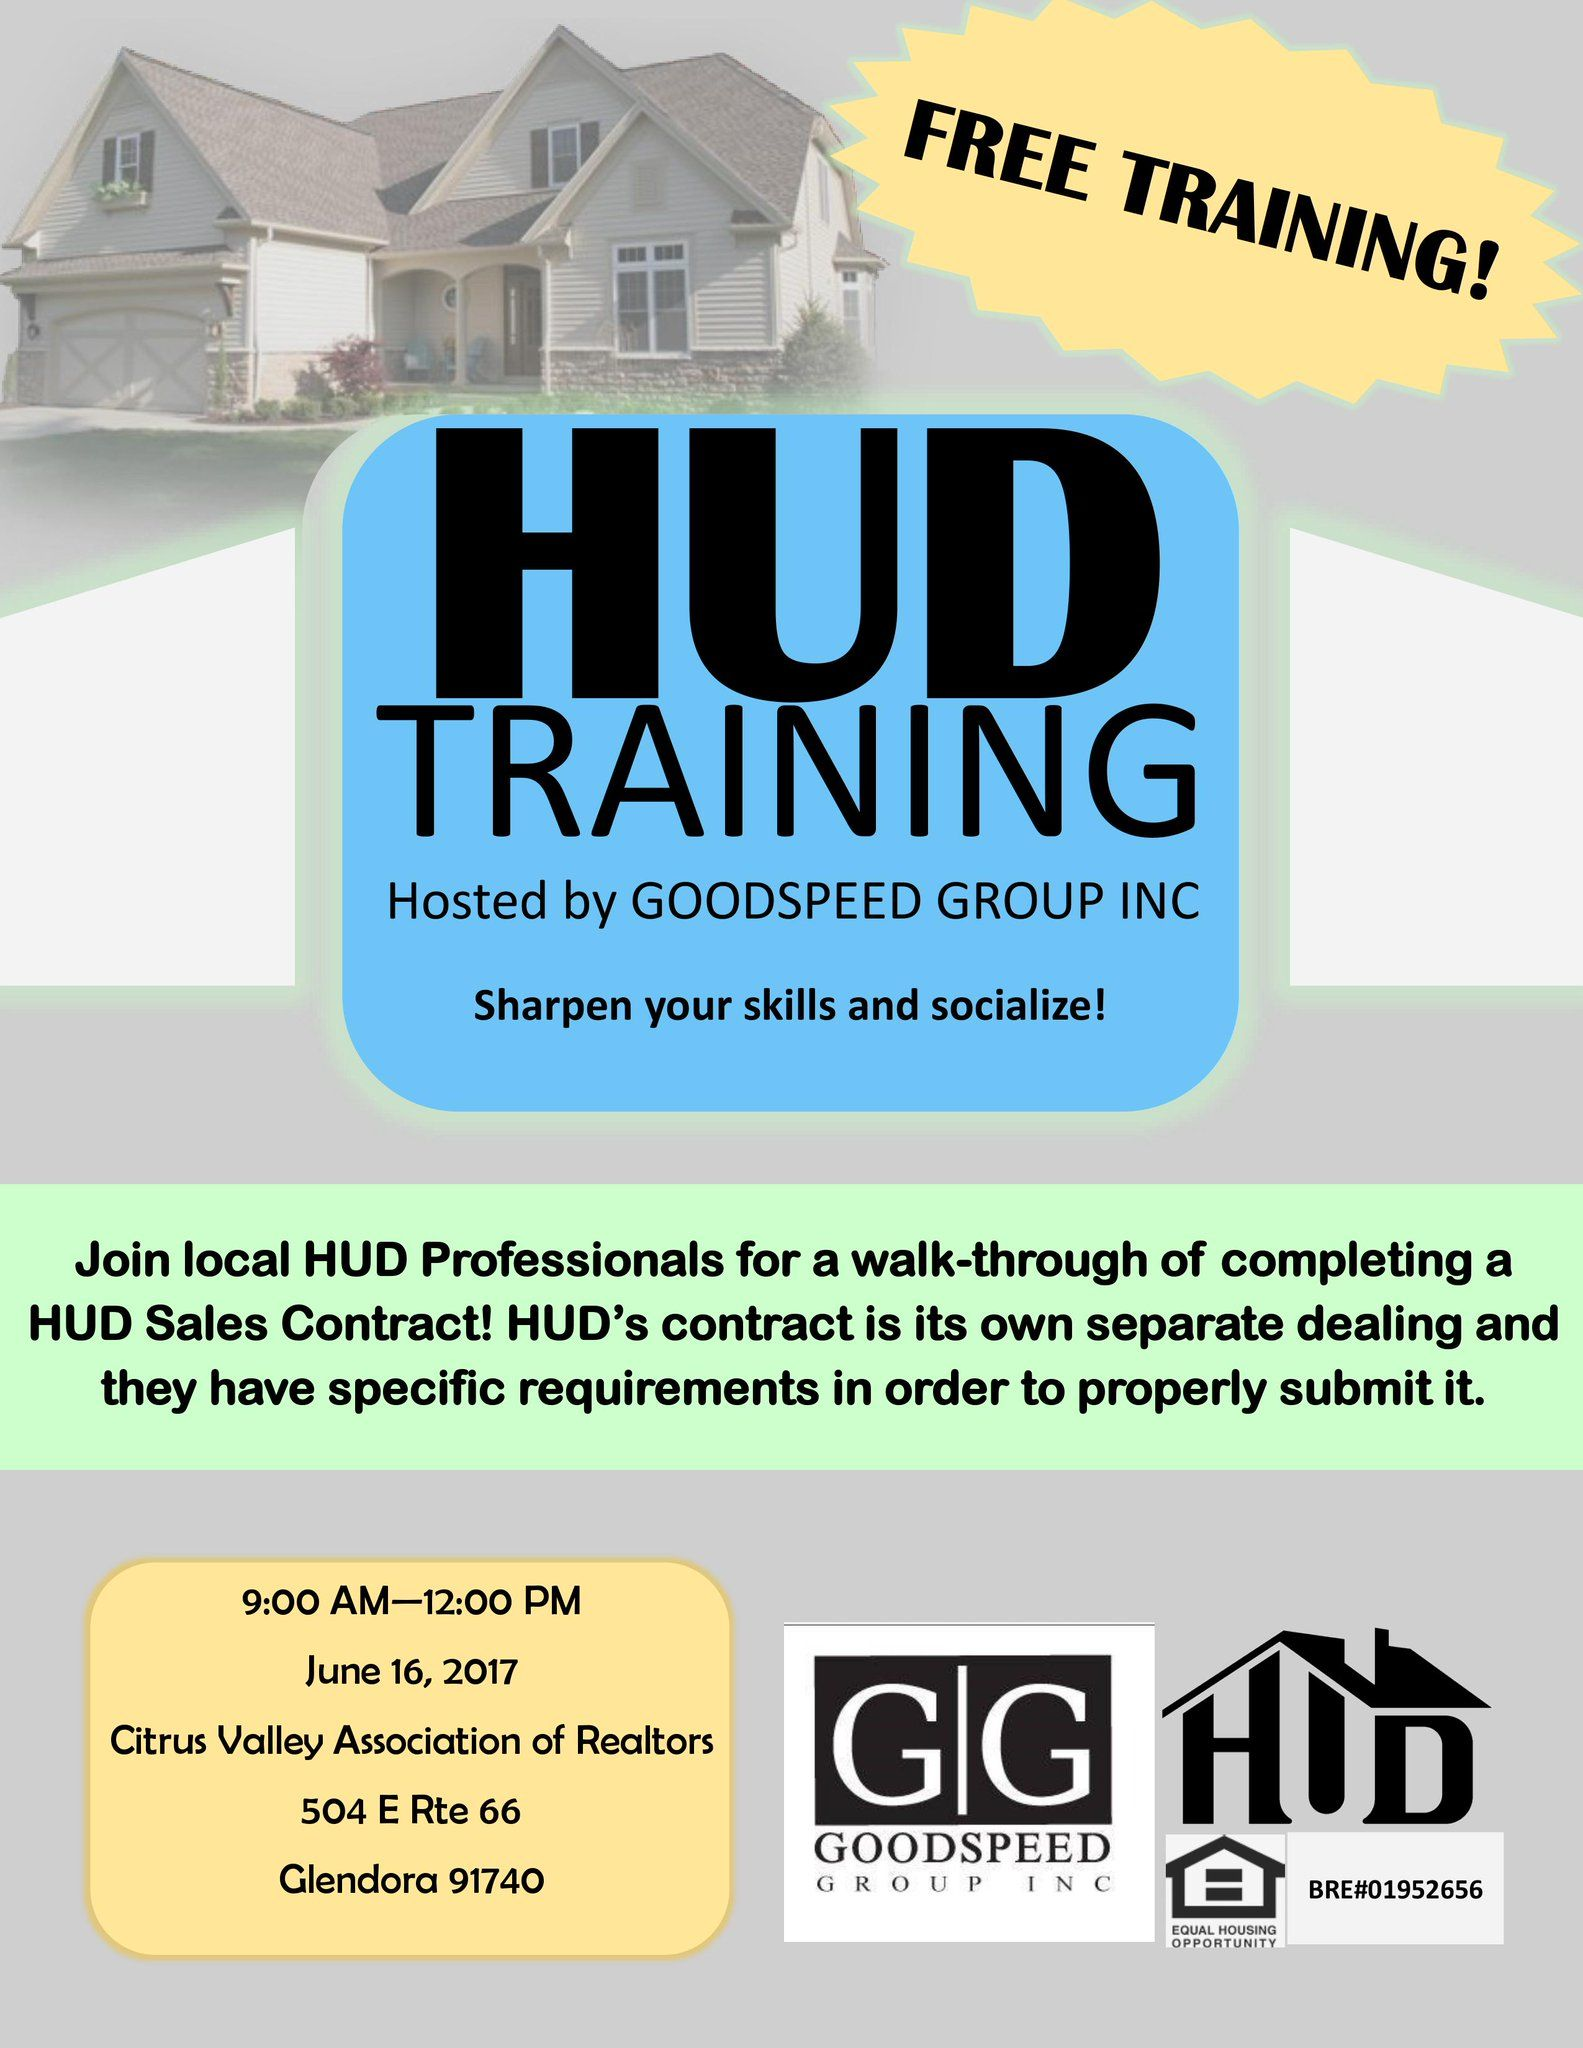 Free Home Sale Contract Free Hud Training Event Providedgoodspeed Group Inc 760245 .